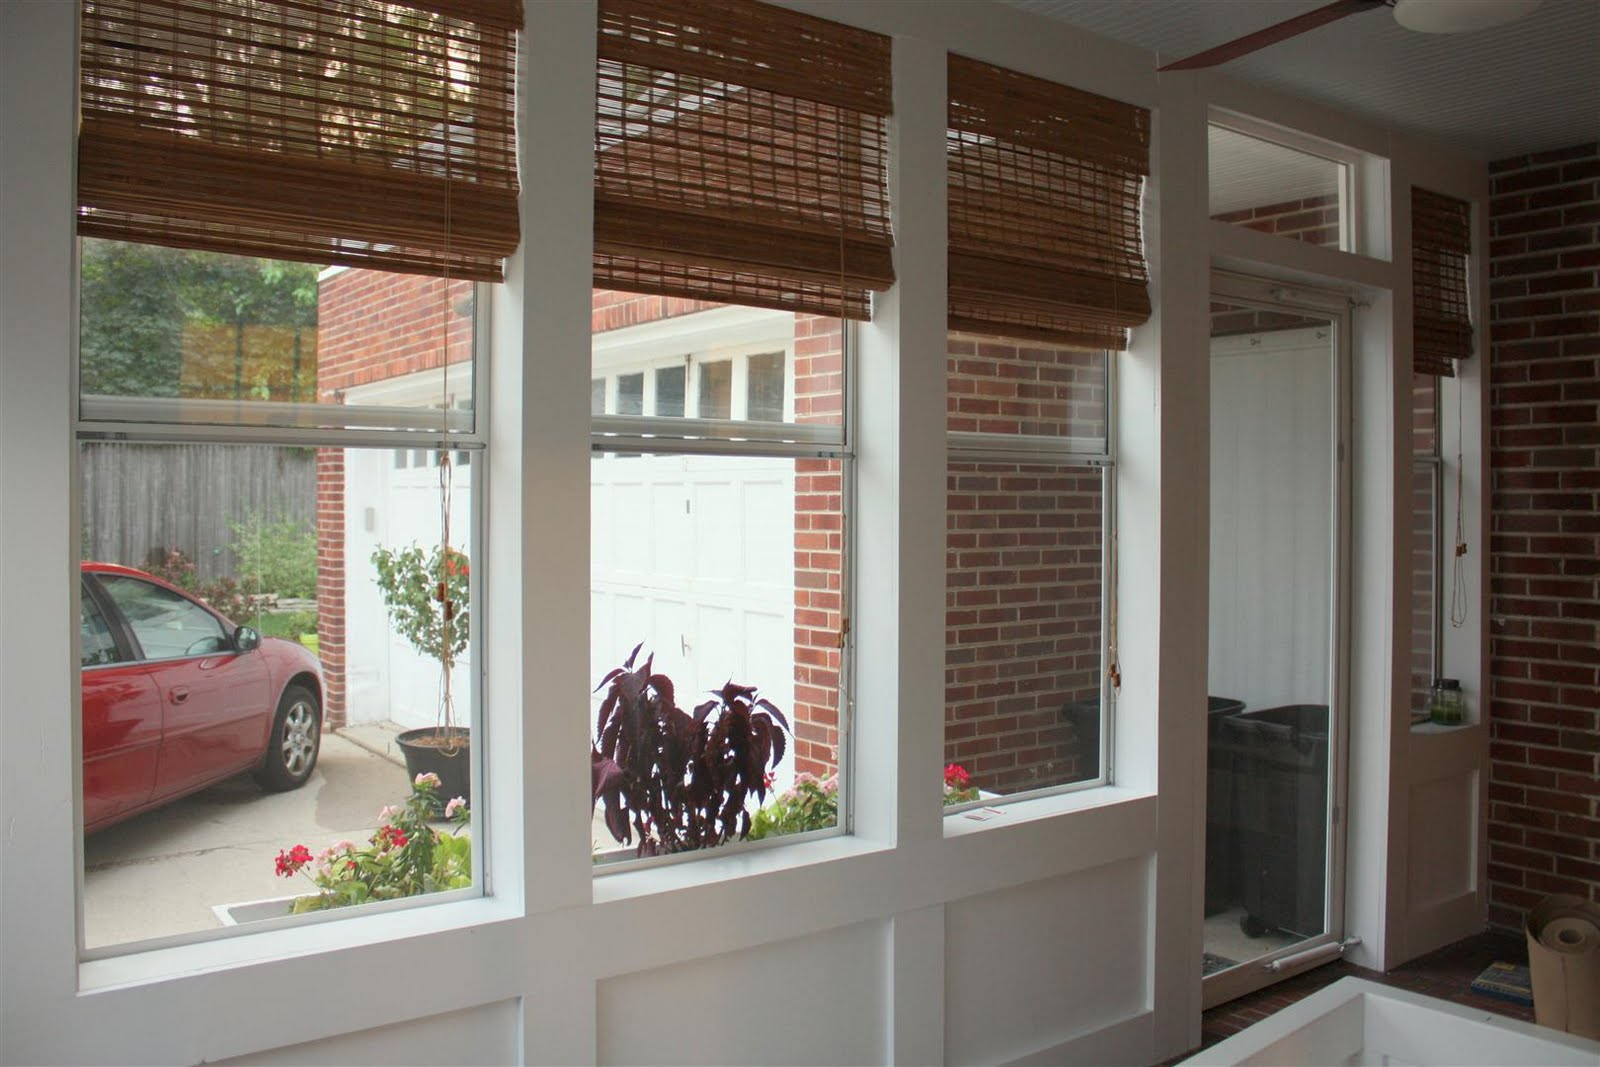 Russet street reno lookin shady for Porch window ideas